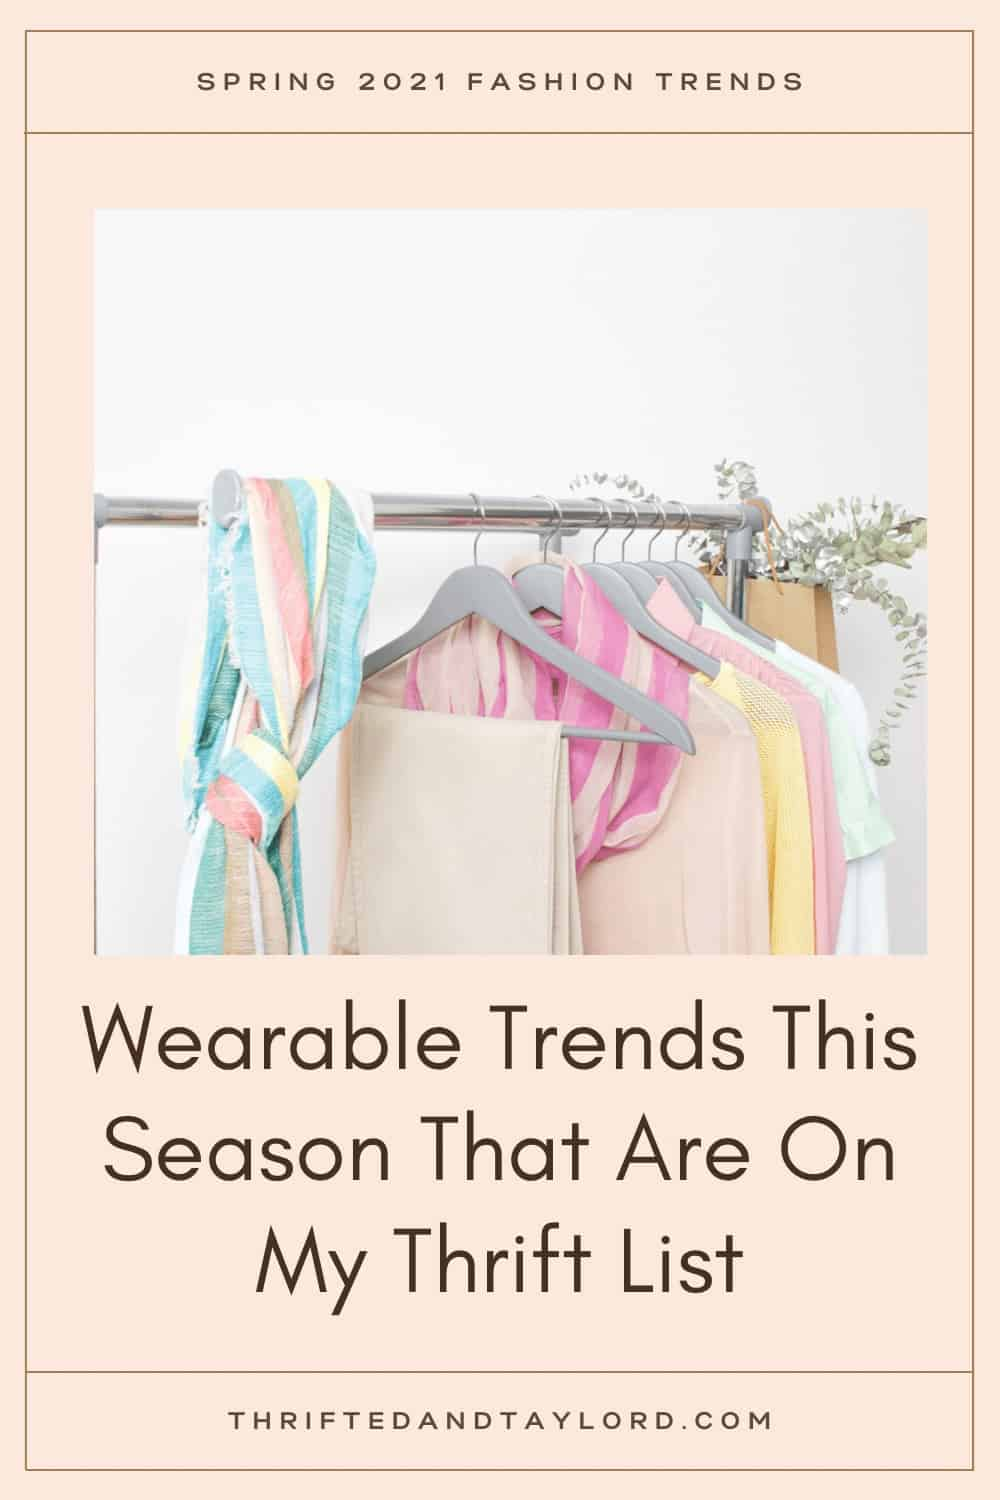 Wearable Spring Fashion Trends For 2021 On My Thrift List